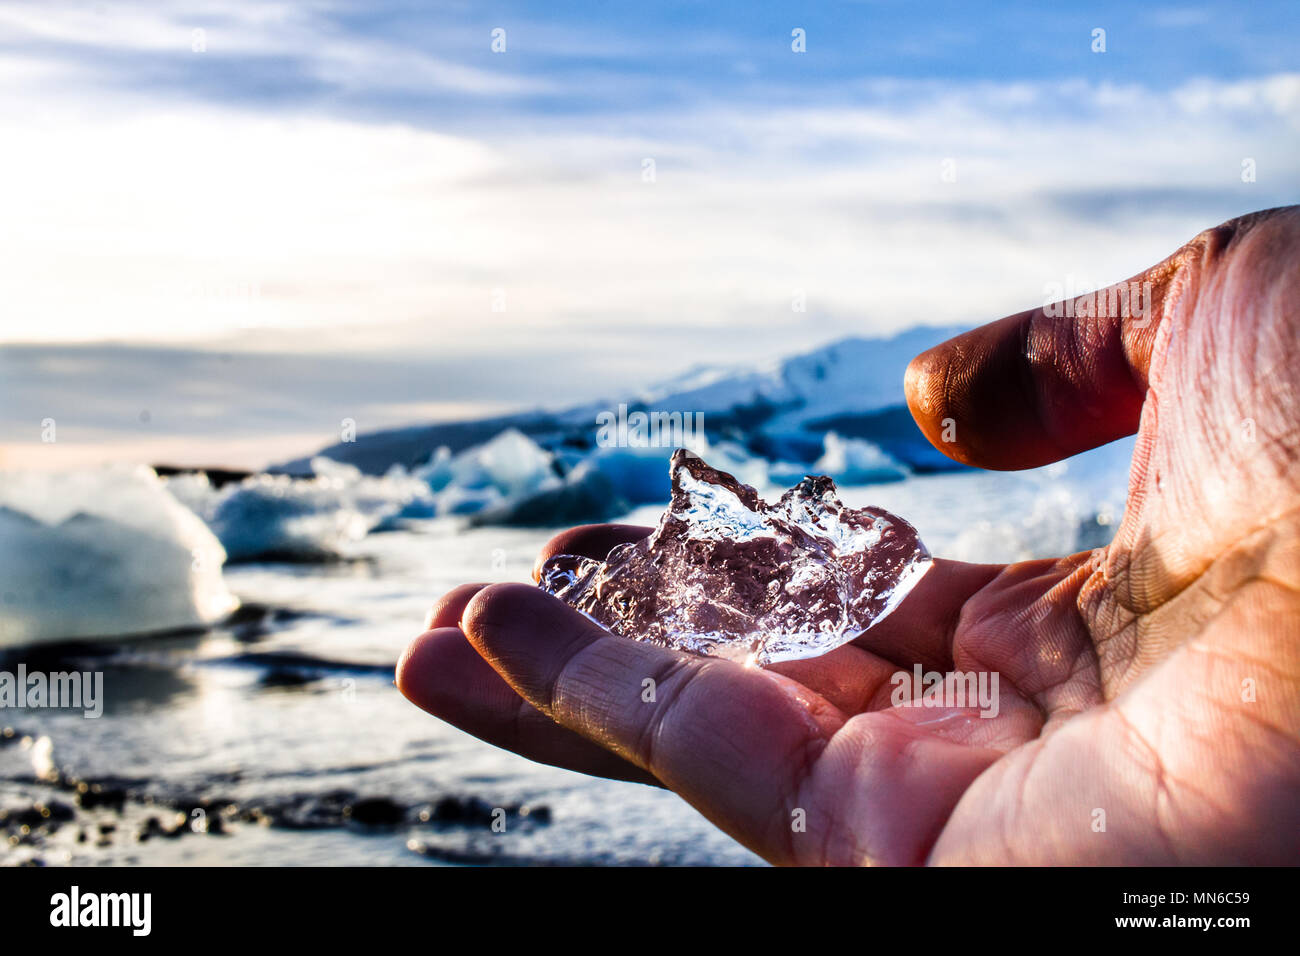 Iceberg dans la main Photo Stock